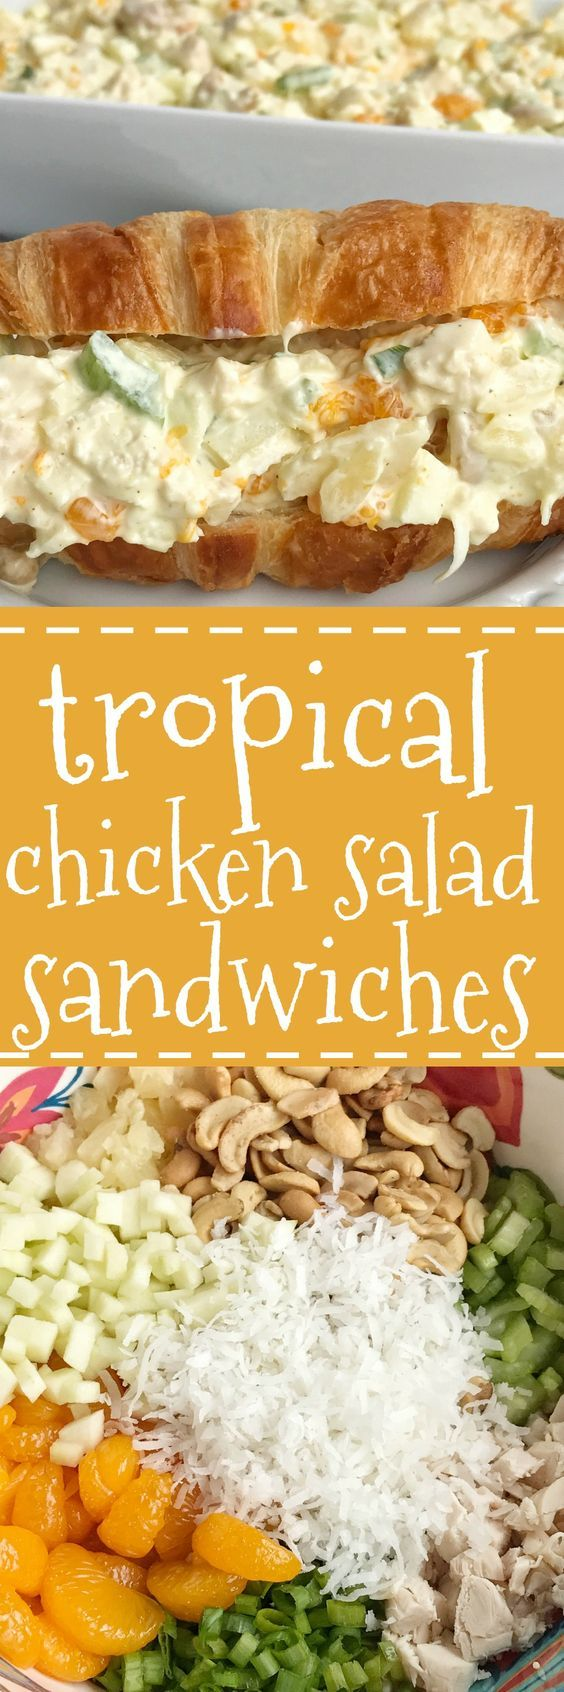 Tropical chicken salad sandwiches are a no oven dinner that are so creamy, delicious, and full of tropical flavors. Mandarin oranges, pineapple, green apple, coconut, green onions, and cashews. Covered in a creamy and simple dressing. These are perfect for an easy dinner.